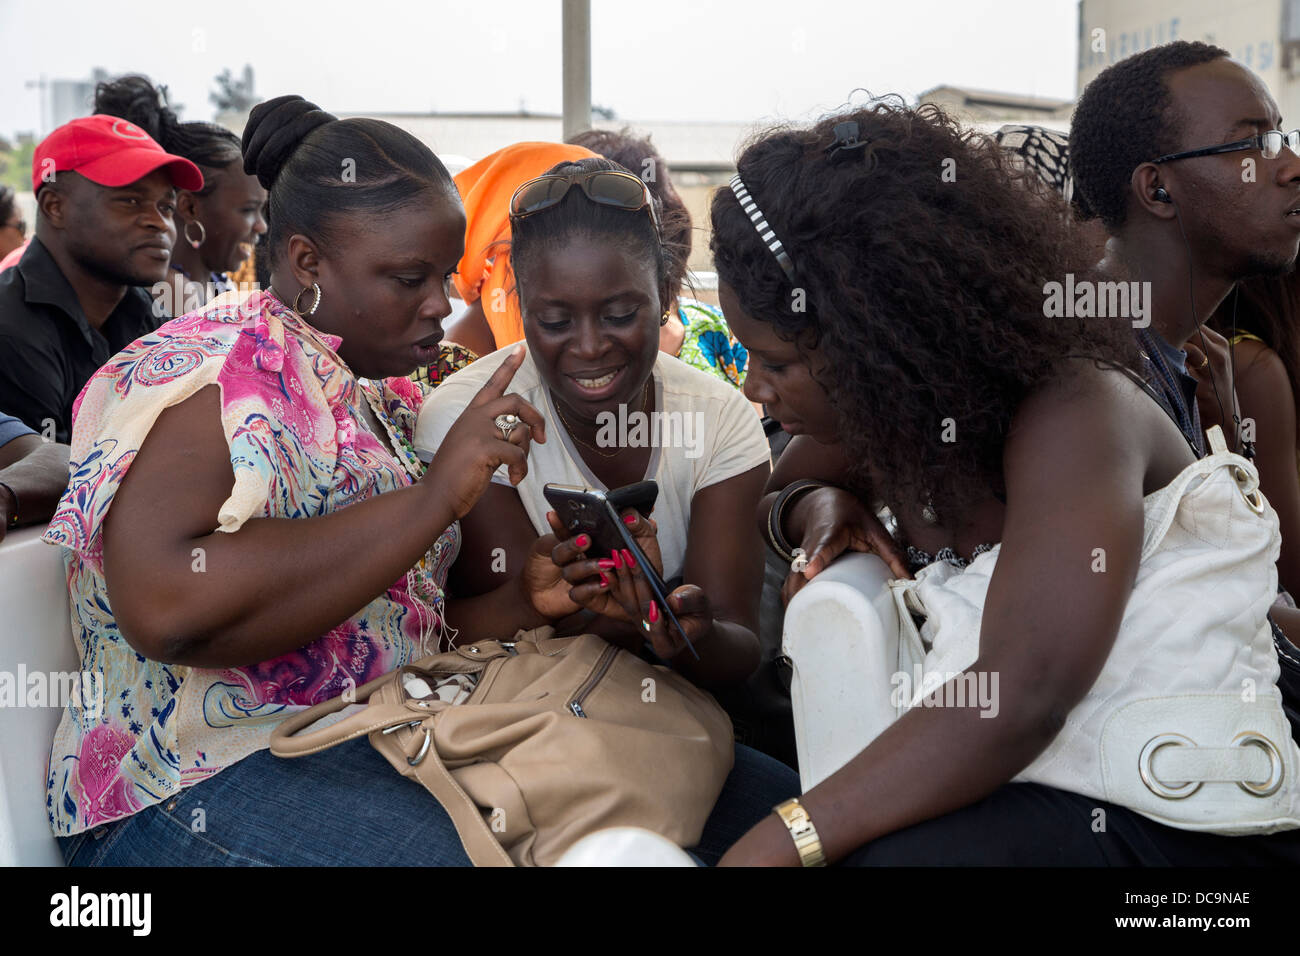 Passengers Looking at Cell Phone Pictures on the Dakar-Goree Ferry, Senegal. - Stock Image